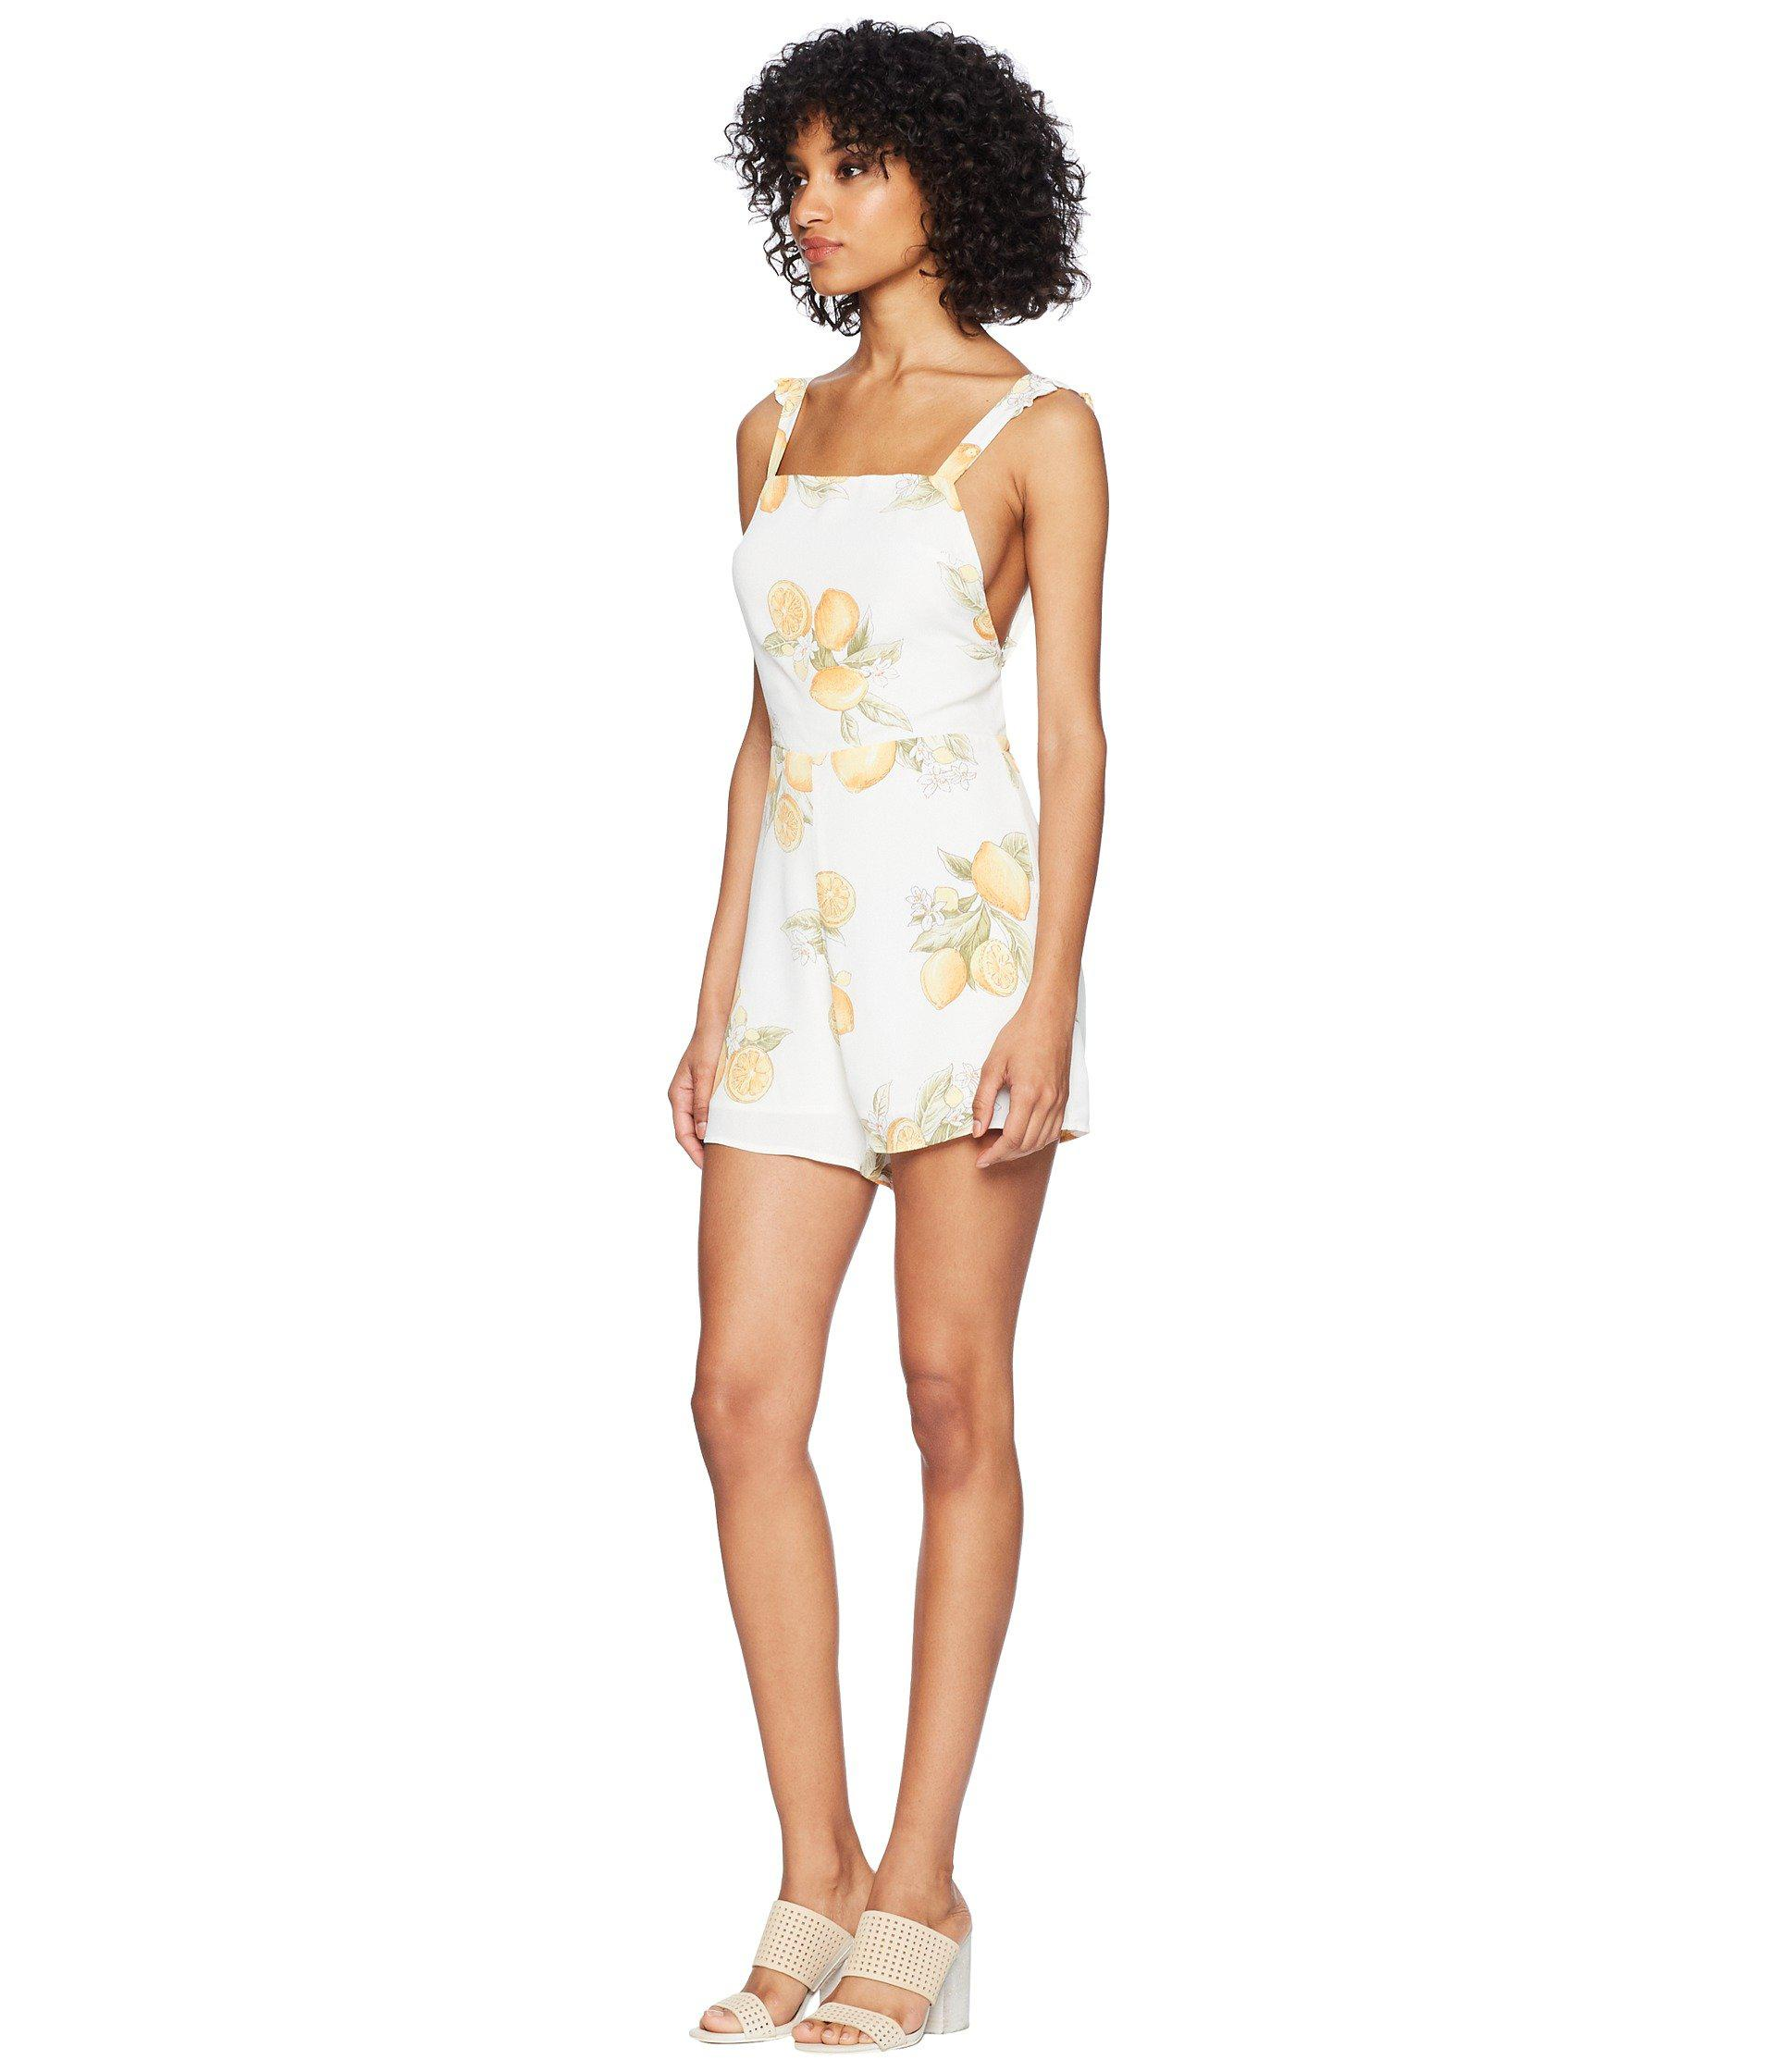 6c9181d6263 Lyst - For Love   Lemons Lemonade Romper in Yellow - Save 12%